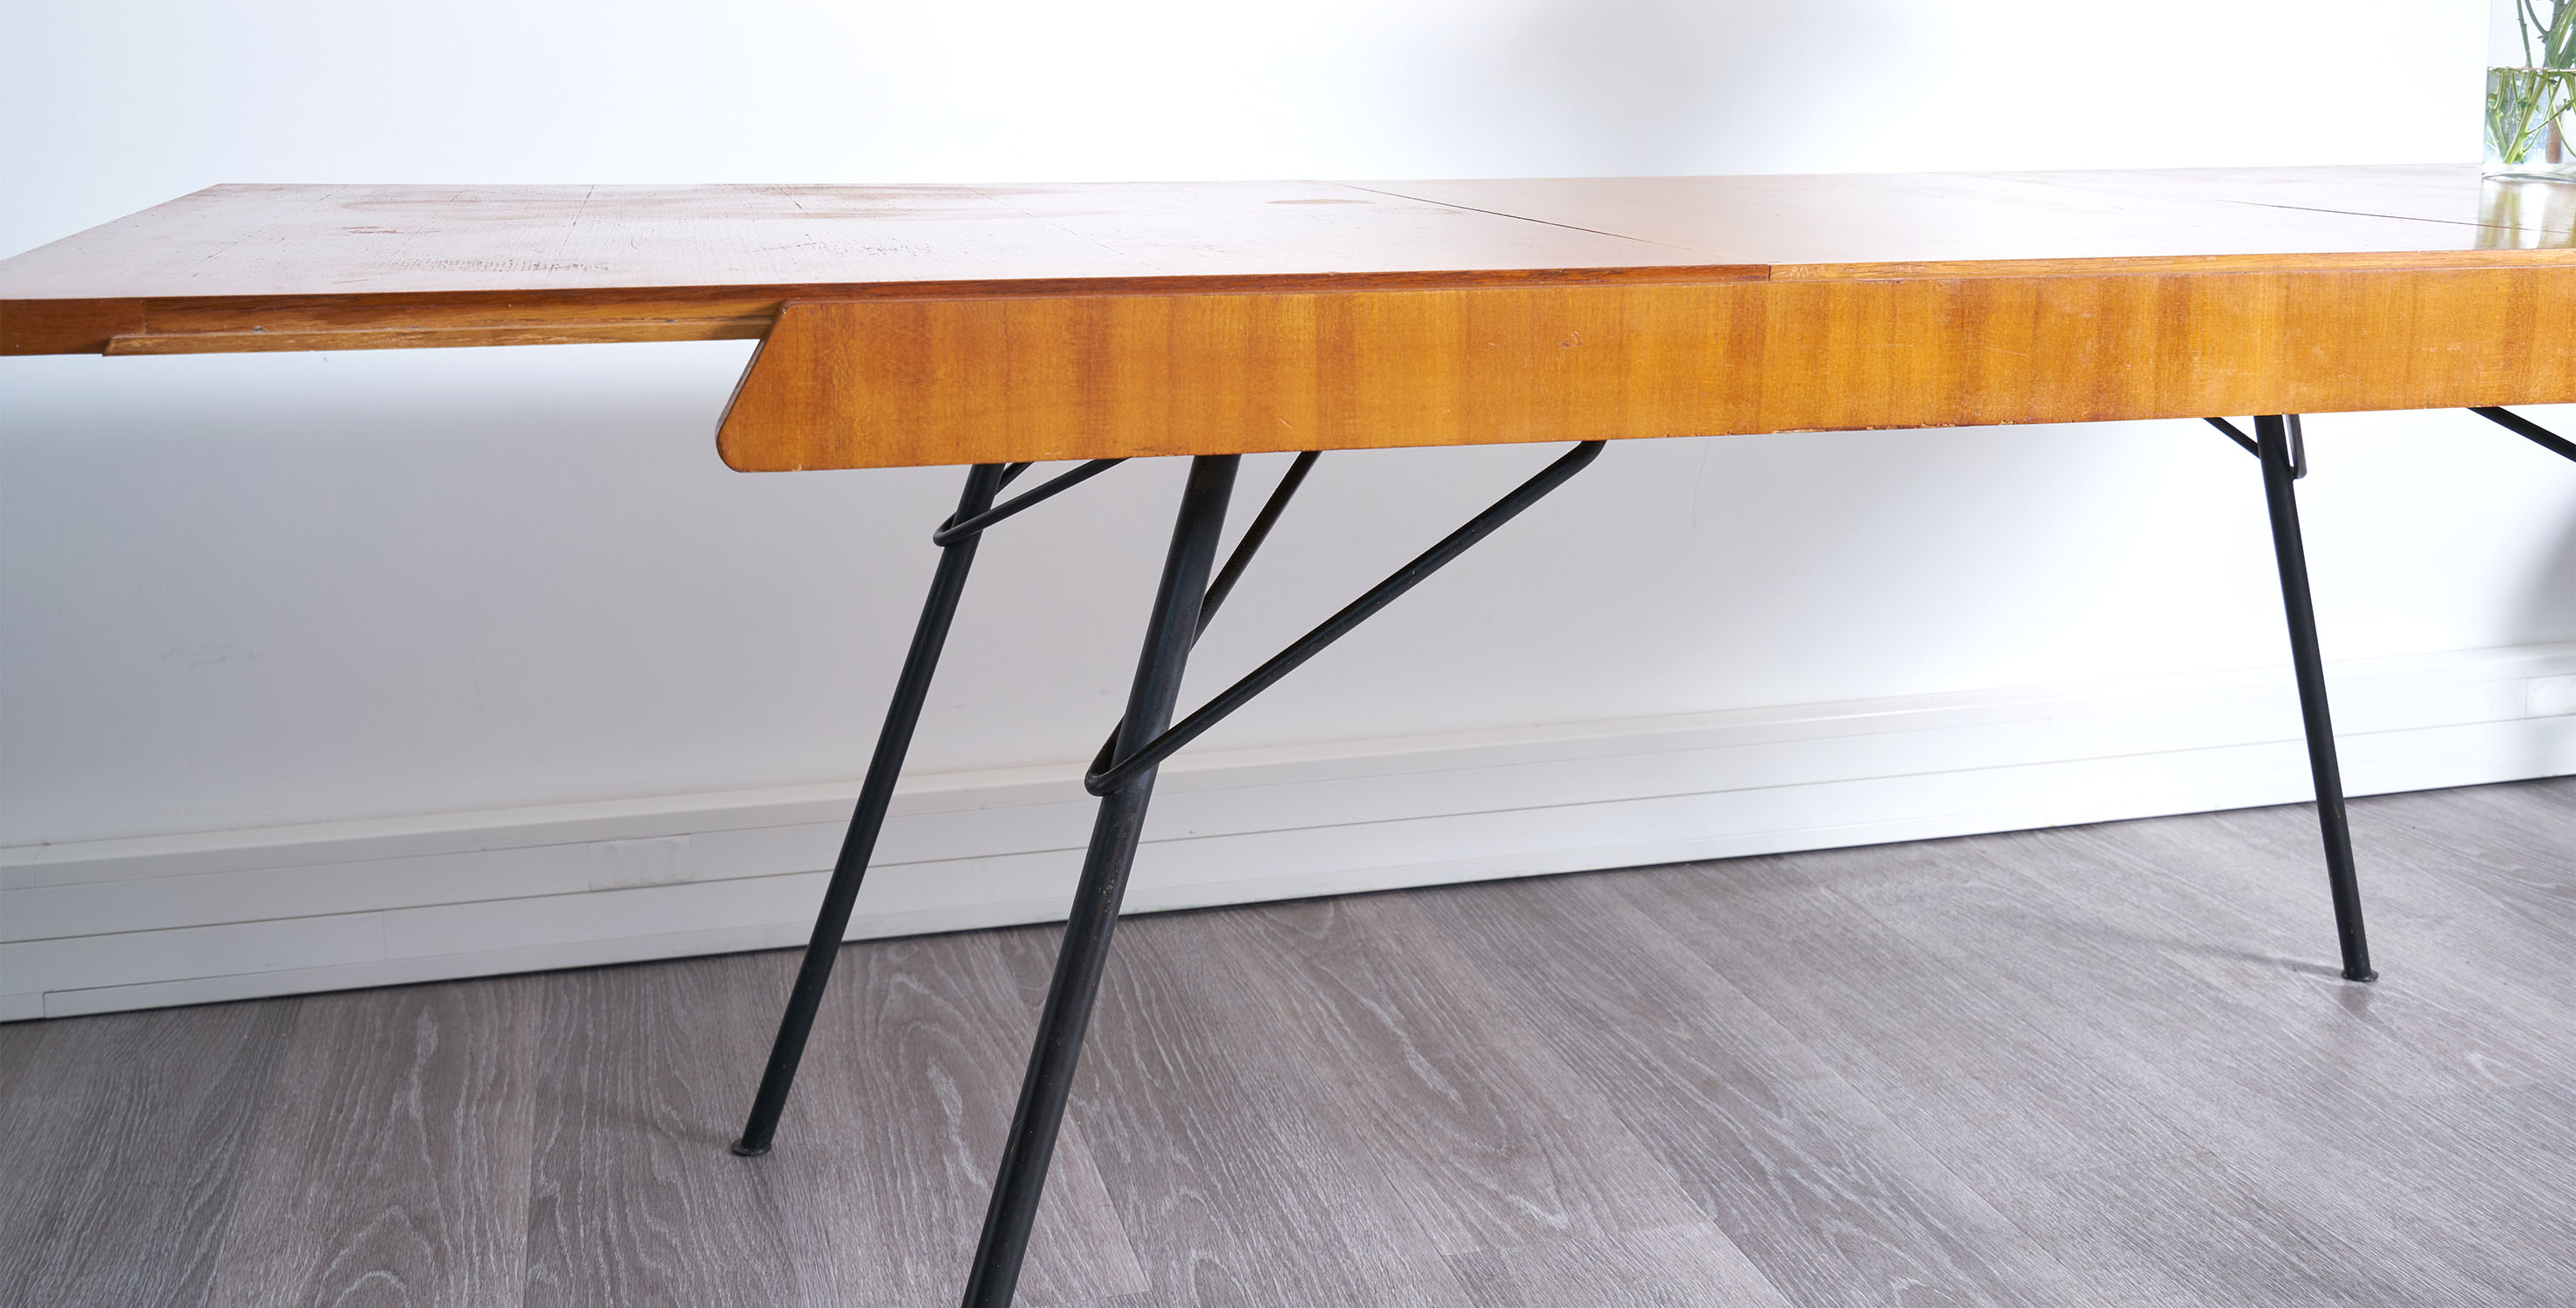 table guermonprez, table vintage, table a manger vintage, table gurmonprez vintage, table chene vintage, table rallonges vintage, table extensible vintage